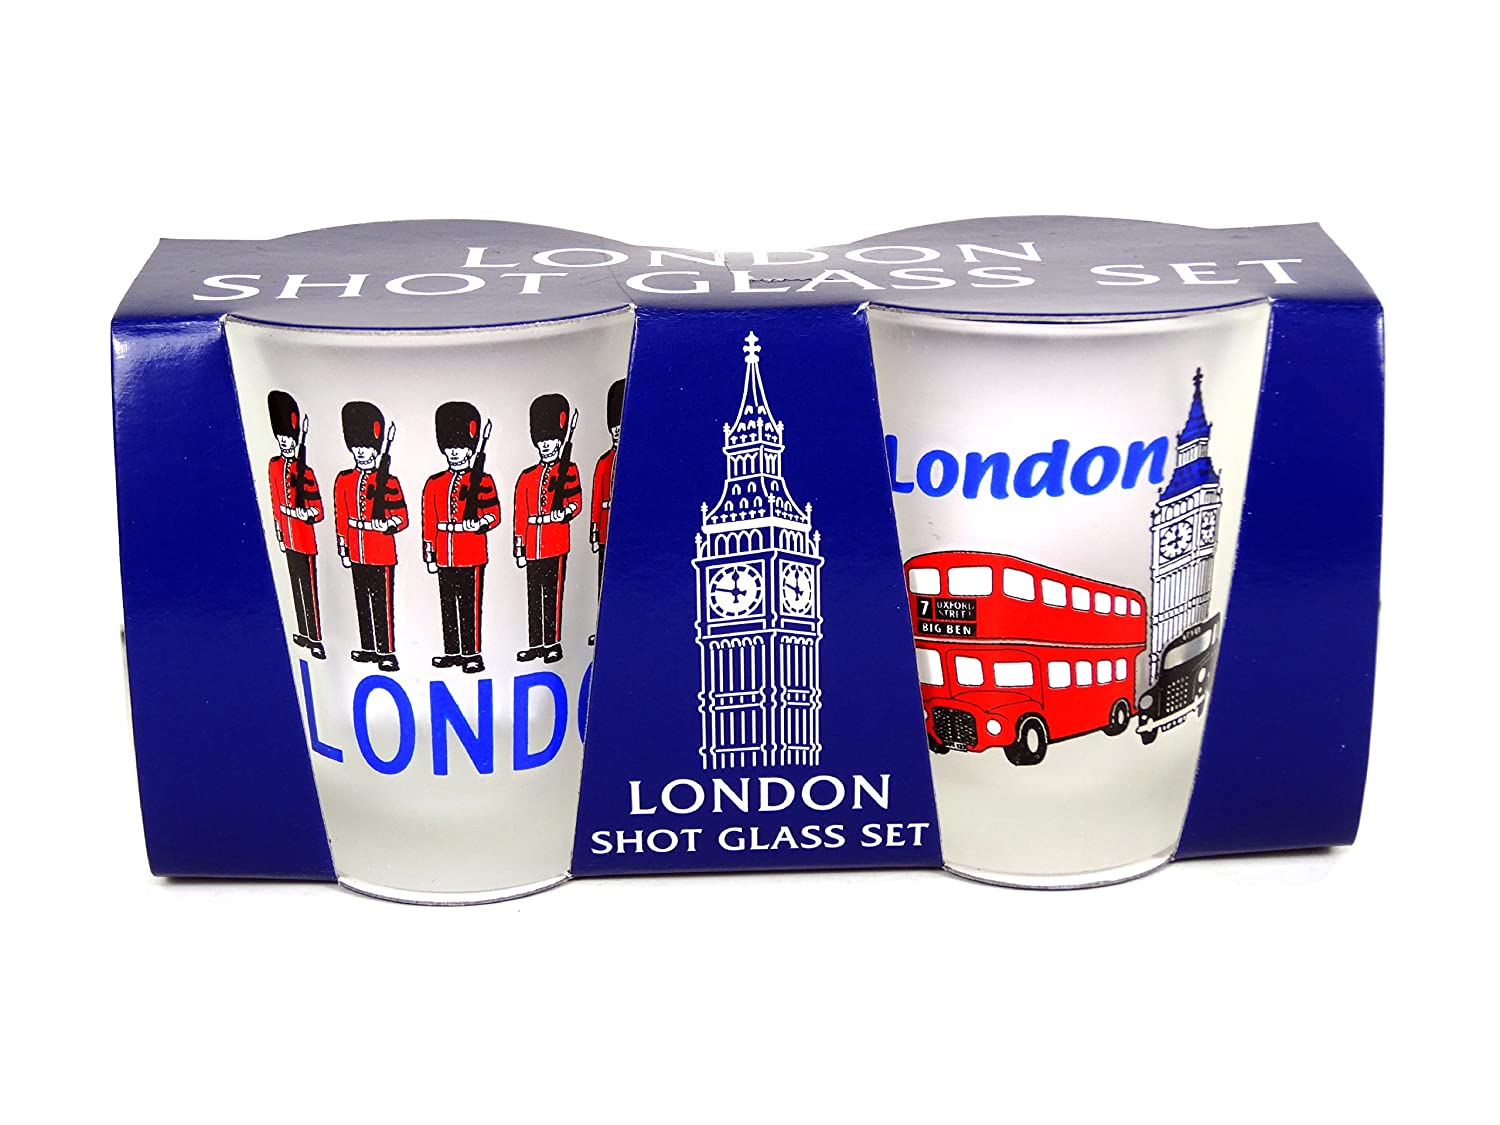 Bus Frosted Shot Glasses with London Icons Taxi Print and Guardsmen Print -2177004 by Shot Glasses Set of 2 Glasses Big Ben